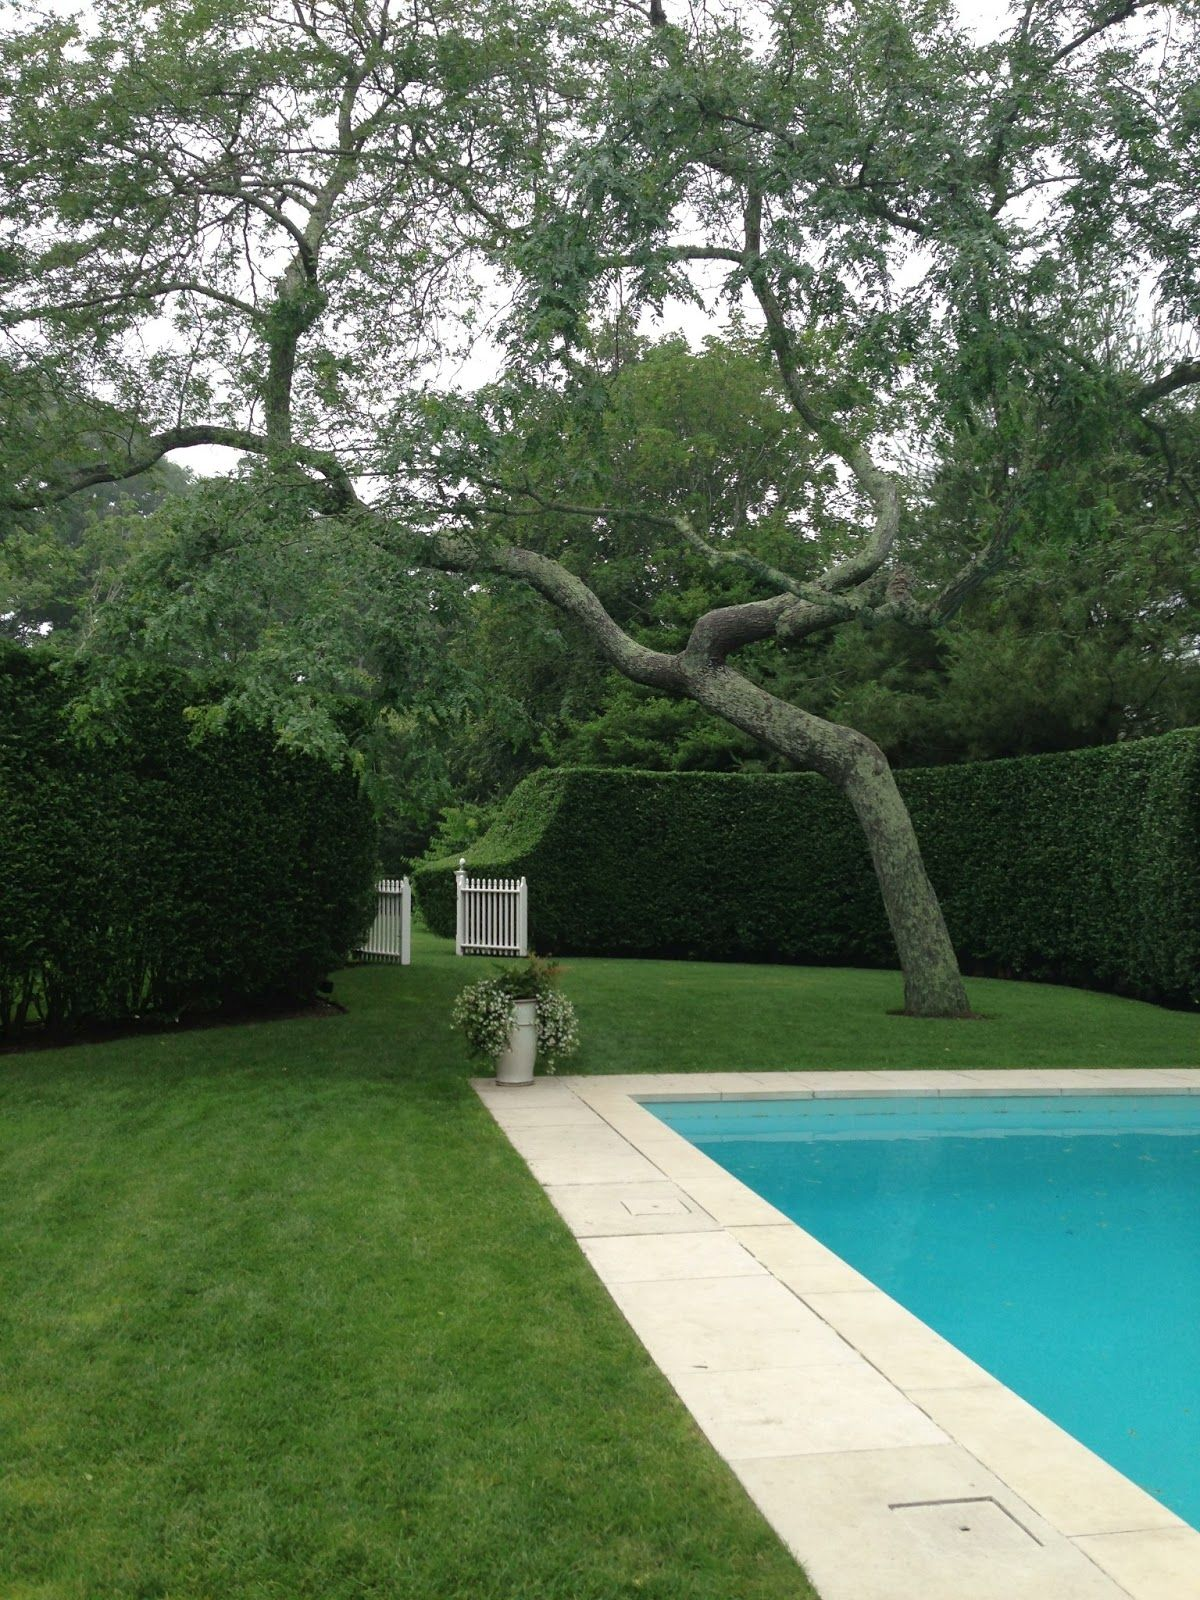 aerin lauder u0027s pool the hedge is great the gate is cute home